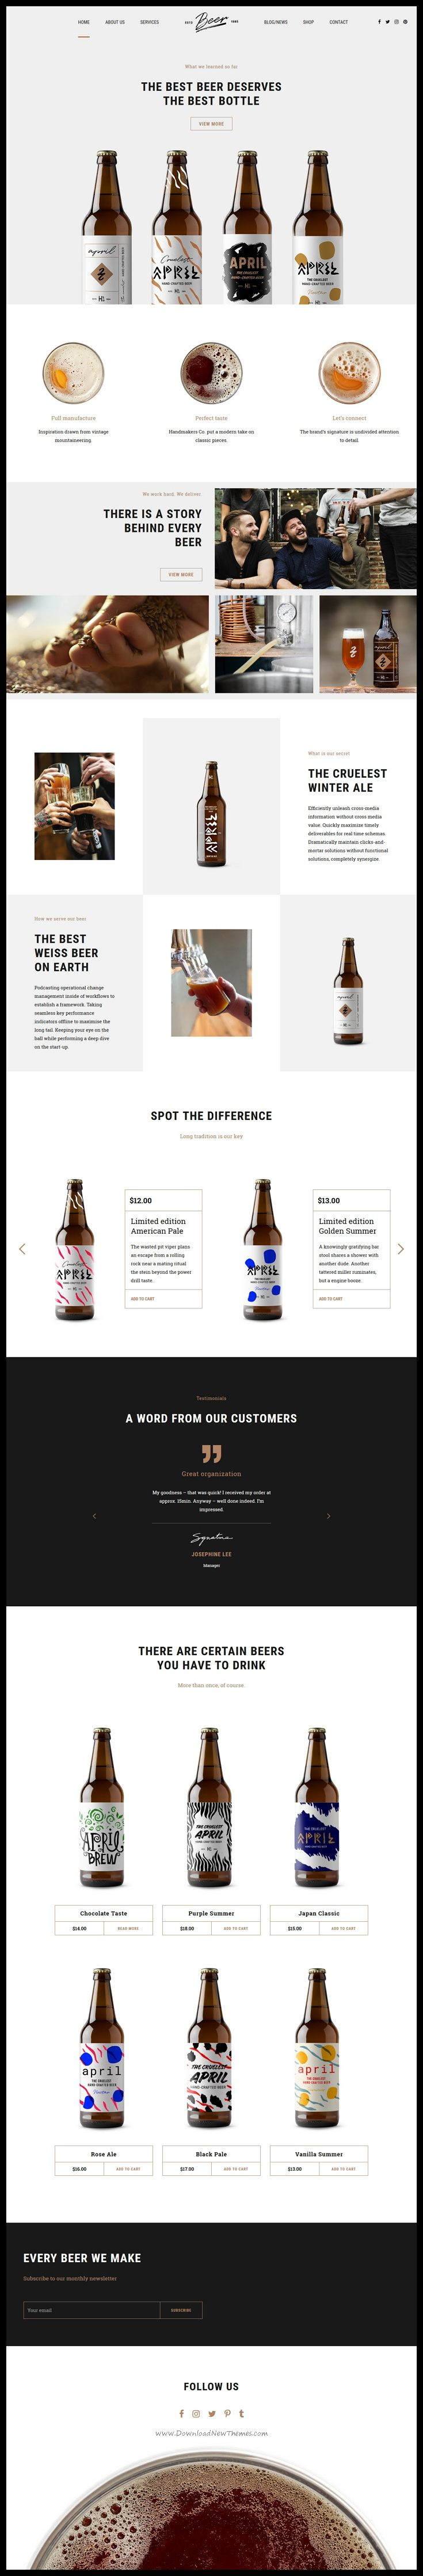 Craft Beer is clean and modern design 6in1 responsive #WordPress theme for #brewery, beerhouse, pub or #liquor shop eCommerce website download now..